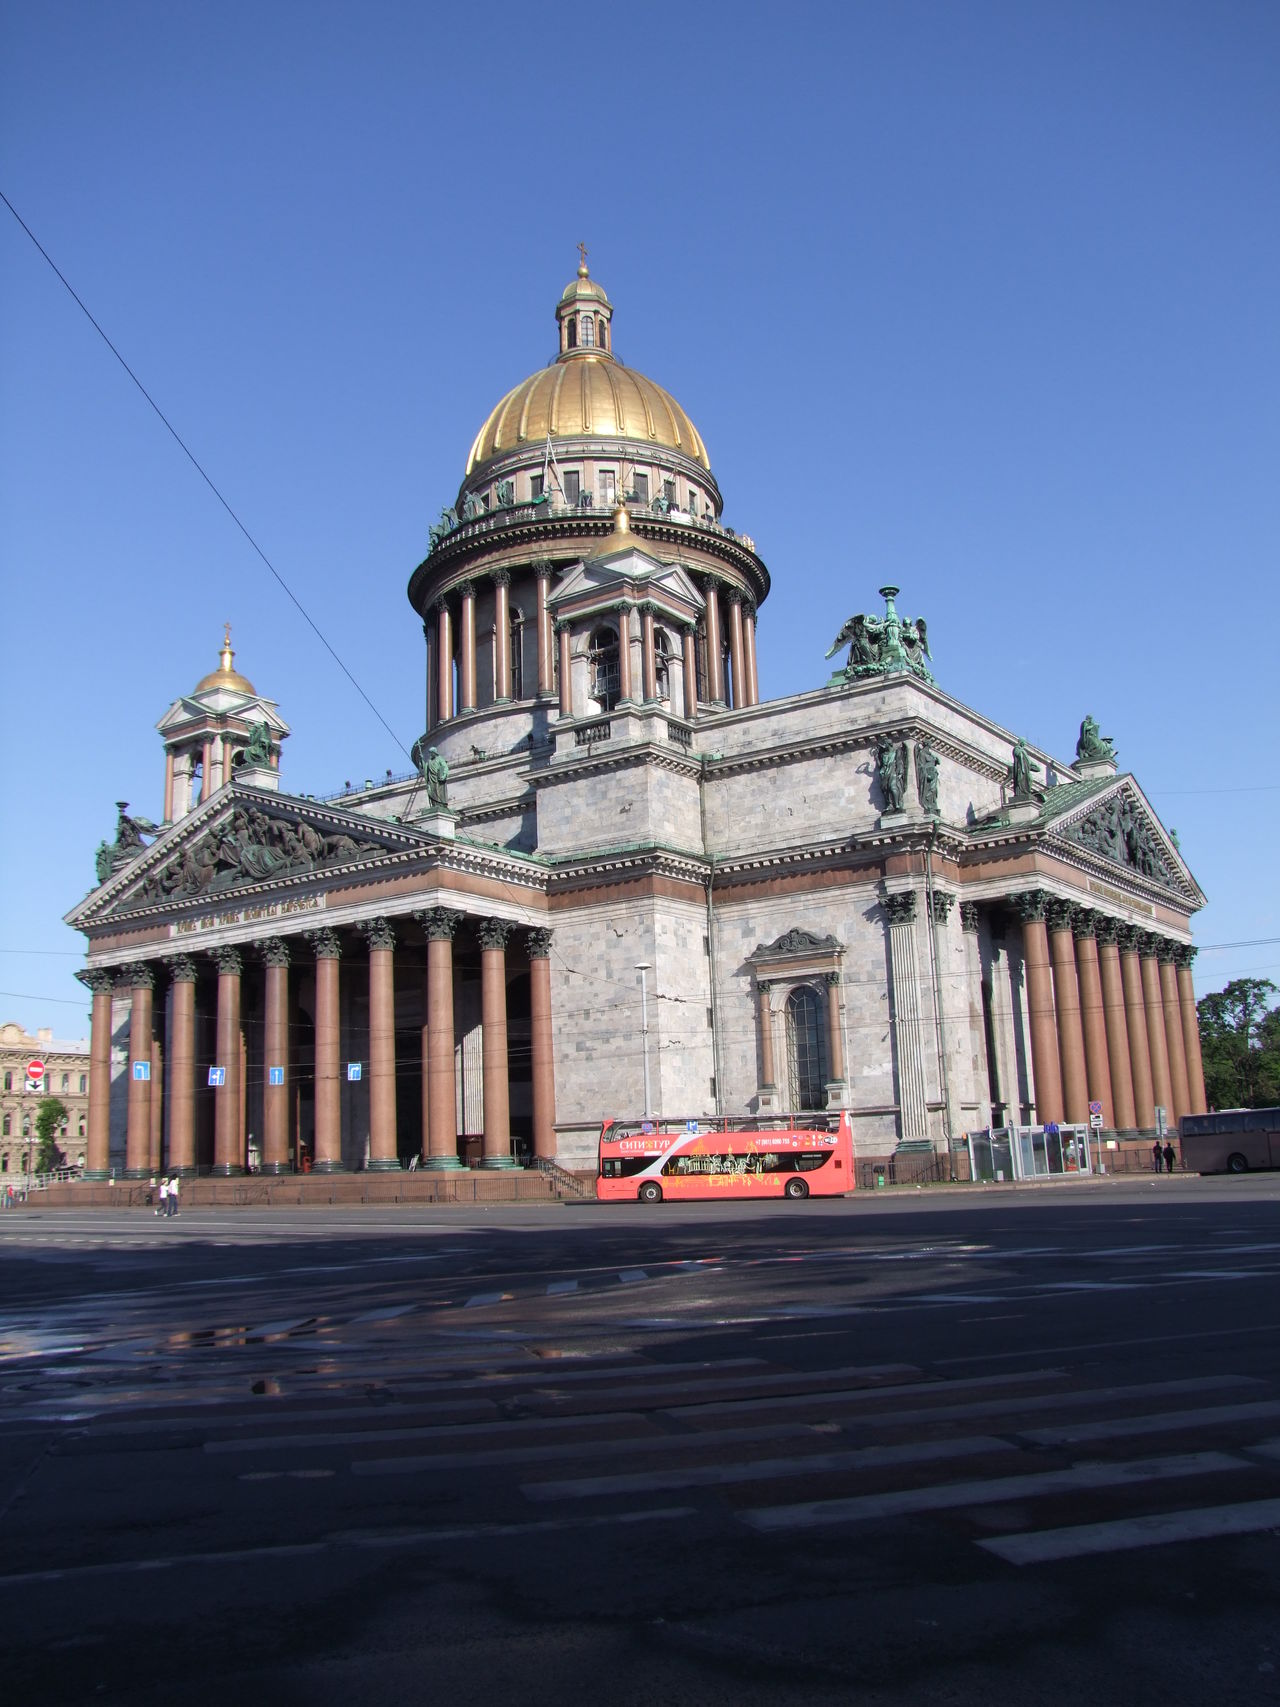 St Isaac's Cathedral (1858) Architecture Blue Sky Building Building Exterior Built Structure Cathedral Church Composition Dawn Of A New Day Façade Famous Place Gold Dome Historic History International Landmark No People Pillars Place Of Worship Religion Russia Saint Isaac's Cathedral Saint Petersburg Spirituality Tourist Attraction